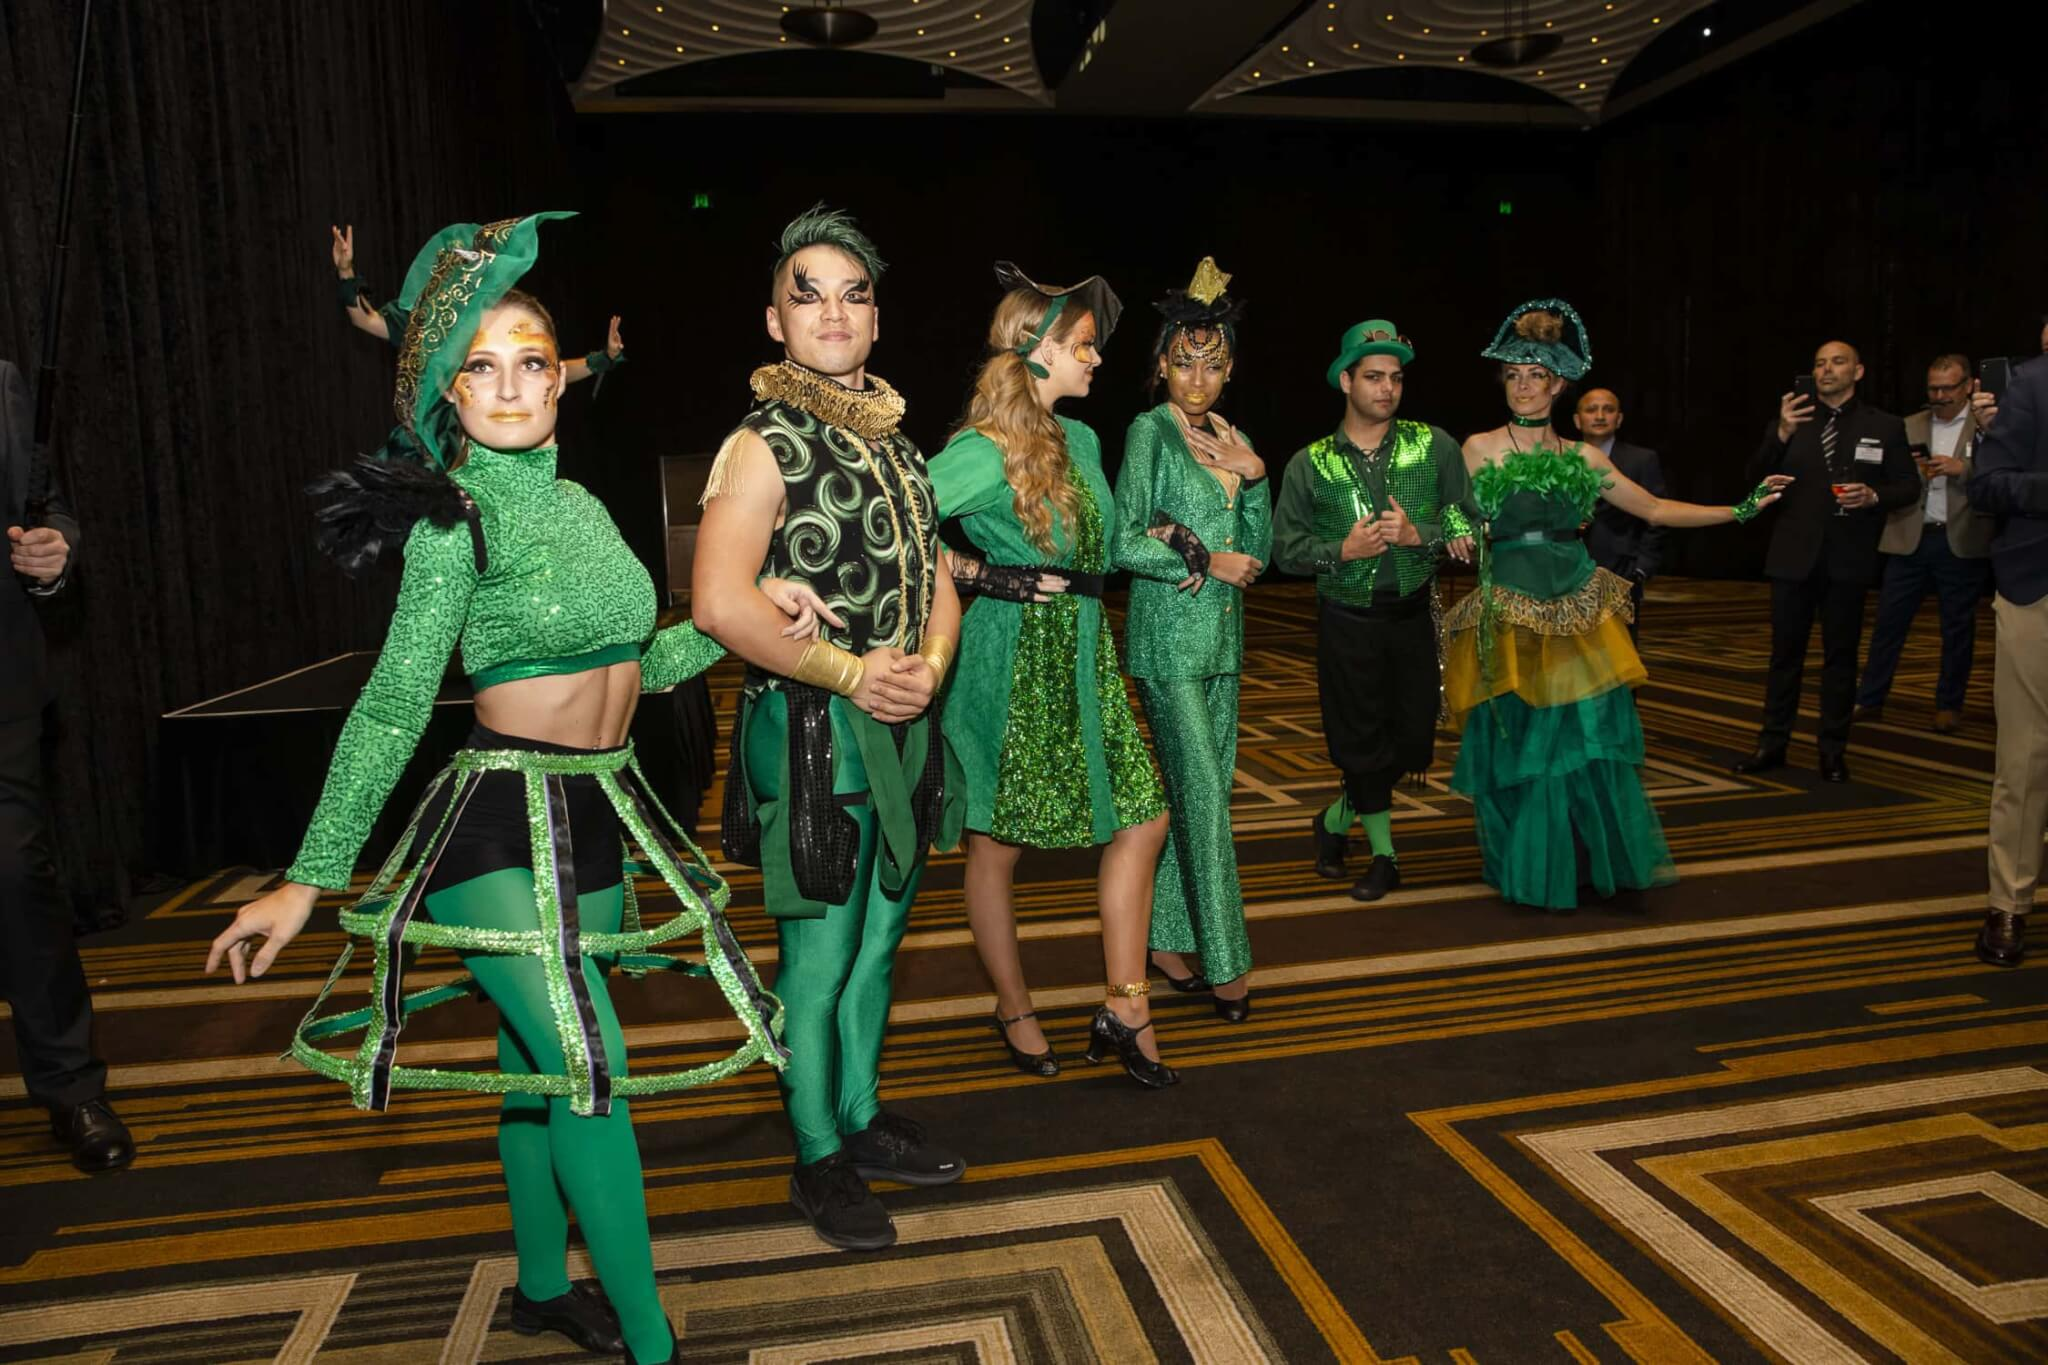 Emerald City Dancers